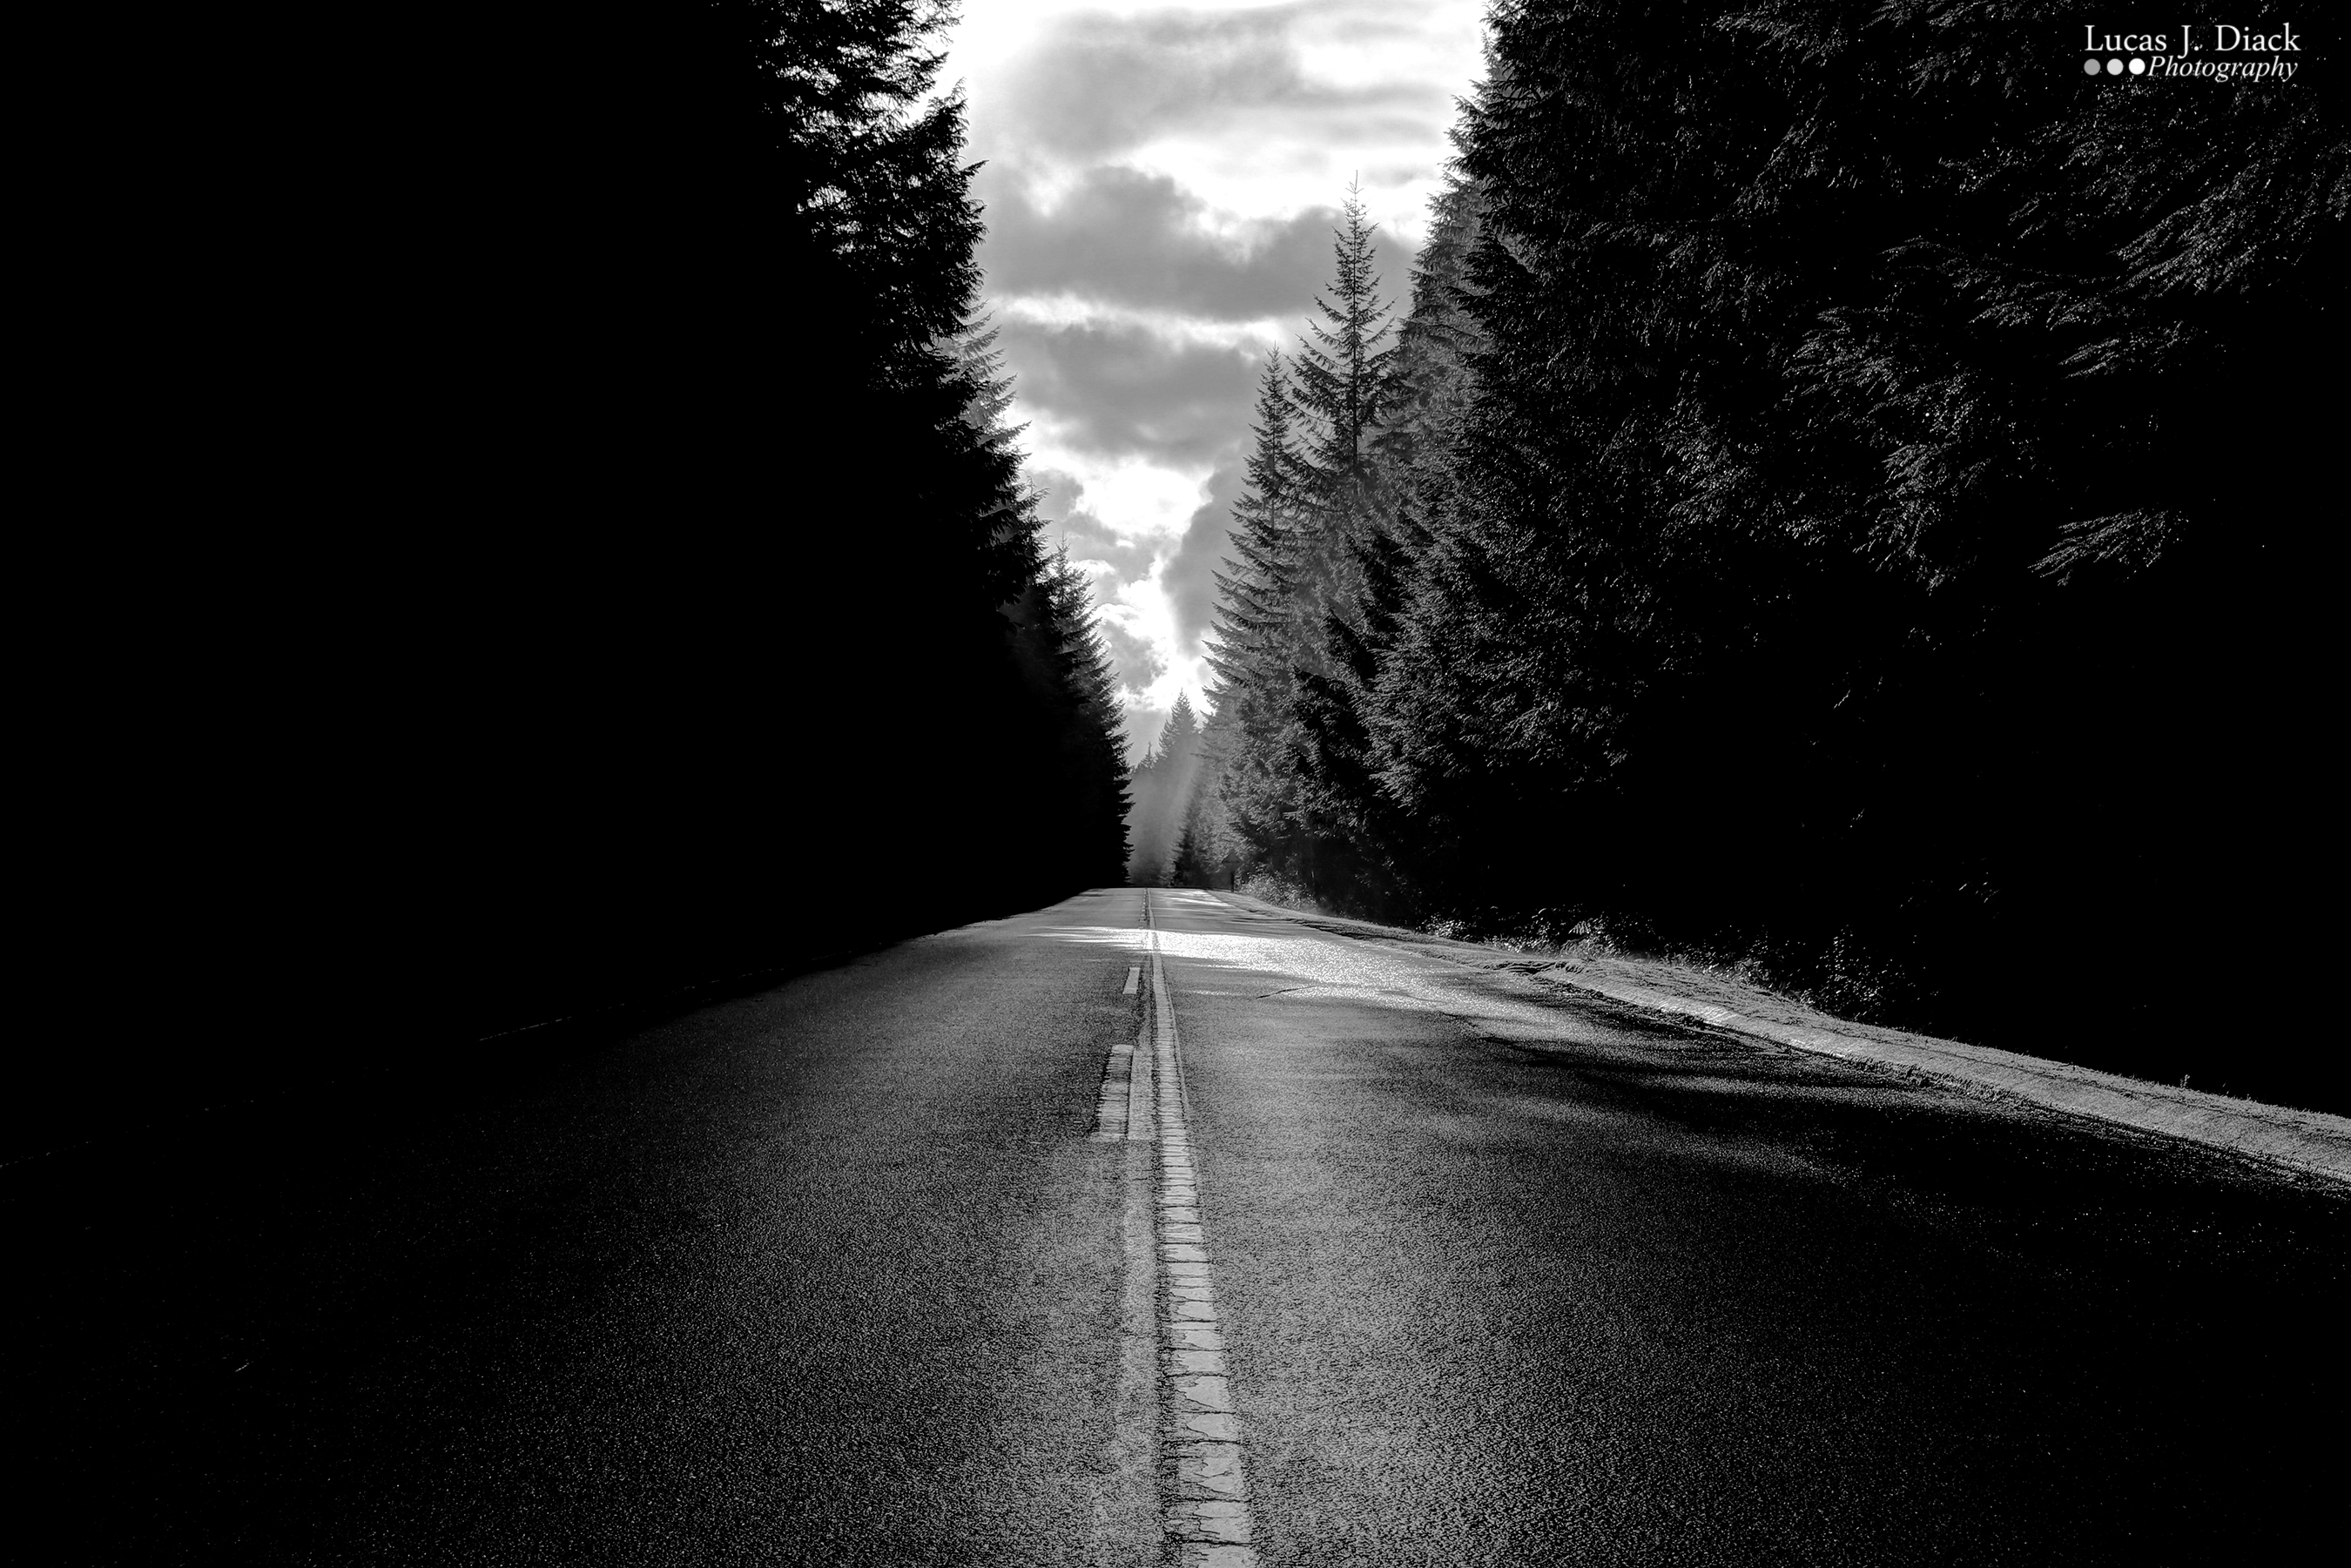 Long Road, Somewhere, B.C.